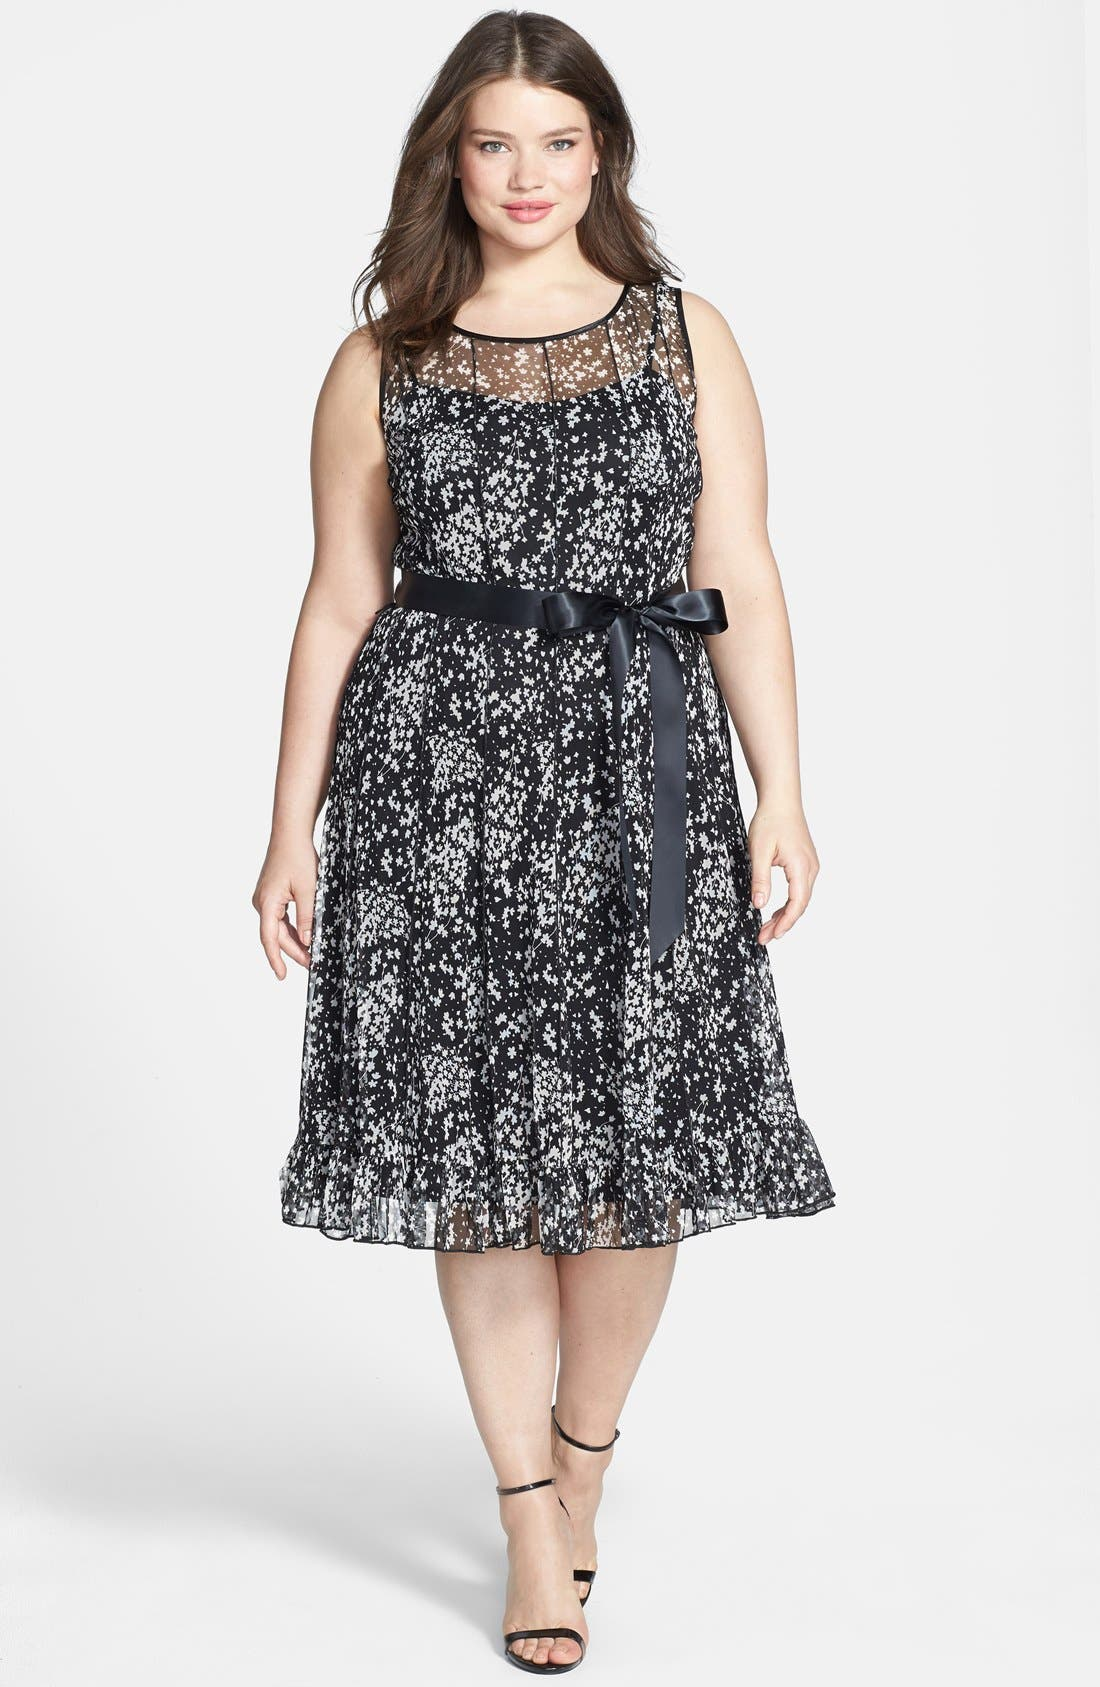 Alternate Image 1 Selected - Jessica Howard Print Seamed Dress (Plus Size)